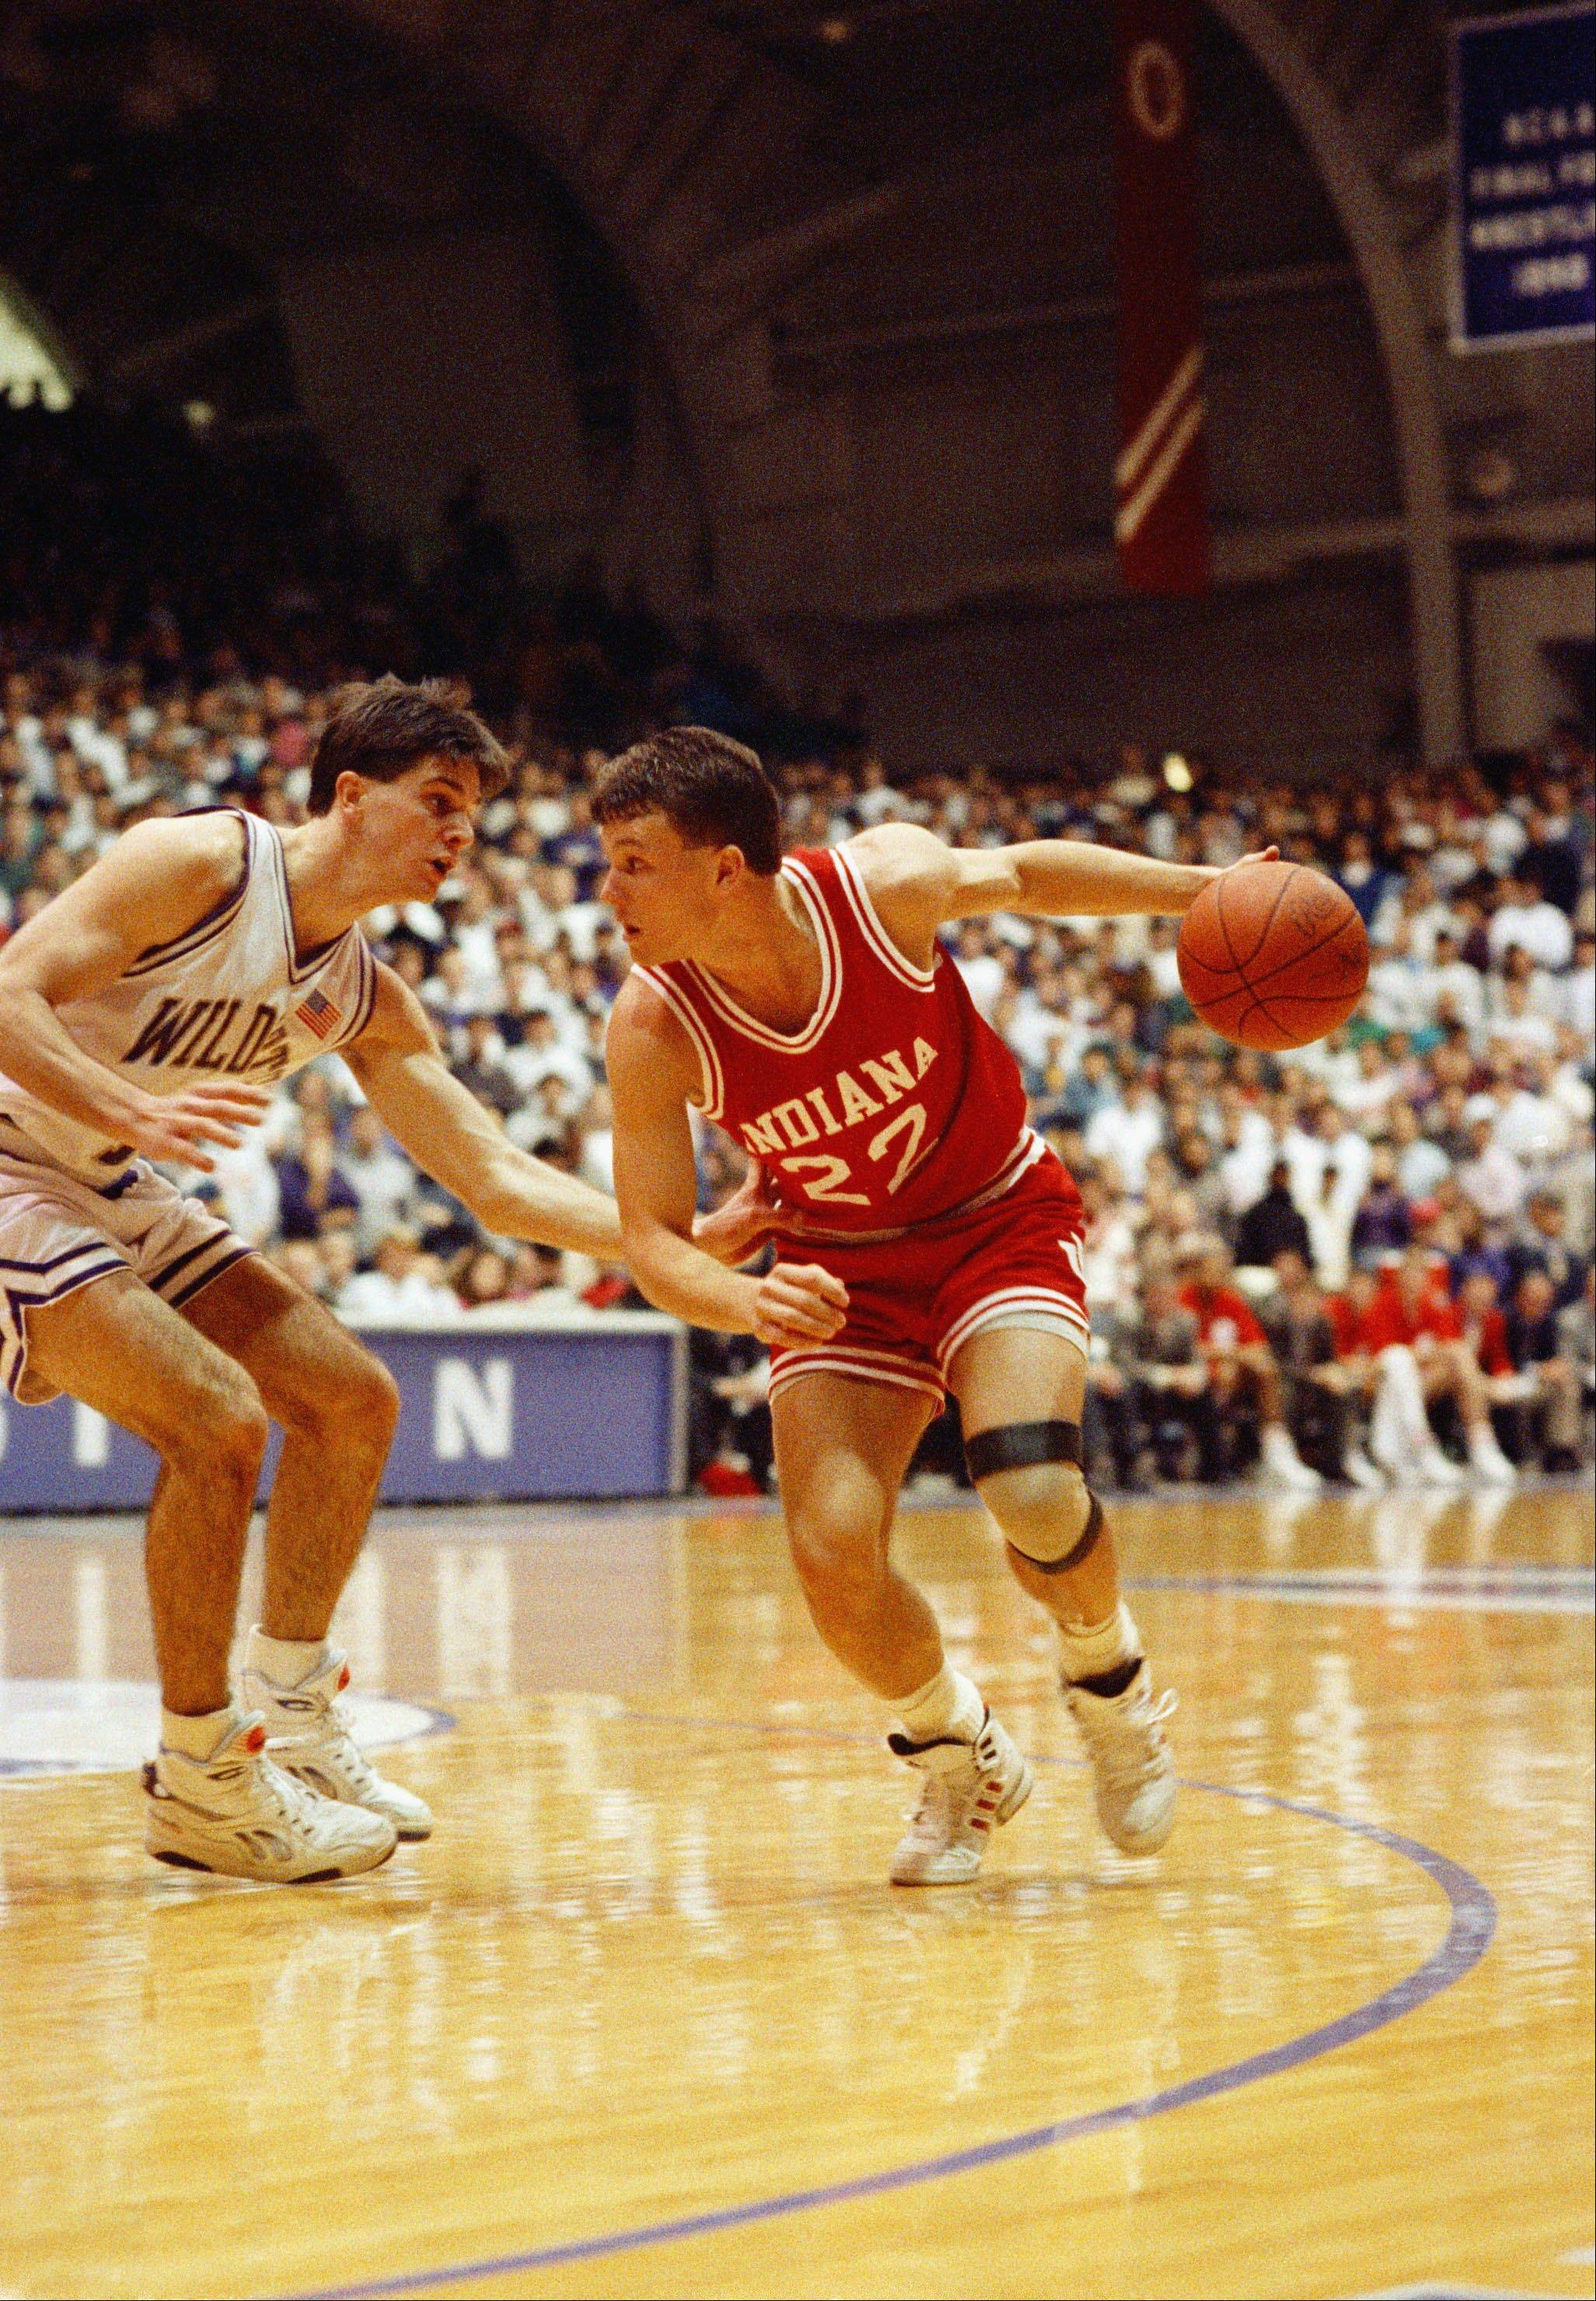 Associated Press/1992 fileNorthwestern's Todd Leslie, left, was a good perimeter defender as well as a shooter, as he demonstrated against Indiana's Damon Bailey (22). Leslie's 15 straight 3-point baskets in 1990 is still an NCAA record, but a freshman from Auburn has 11 straight going into a game Saturday.